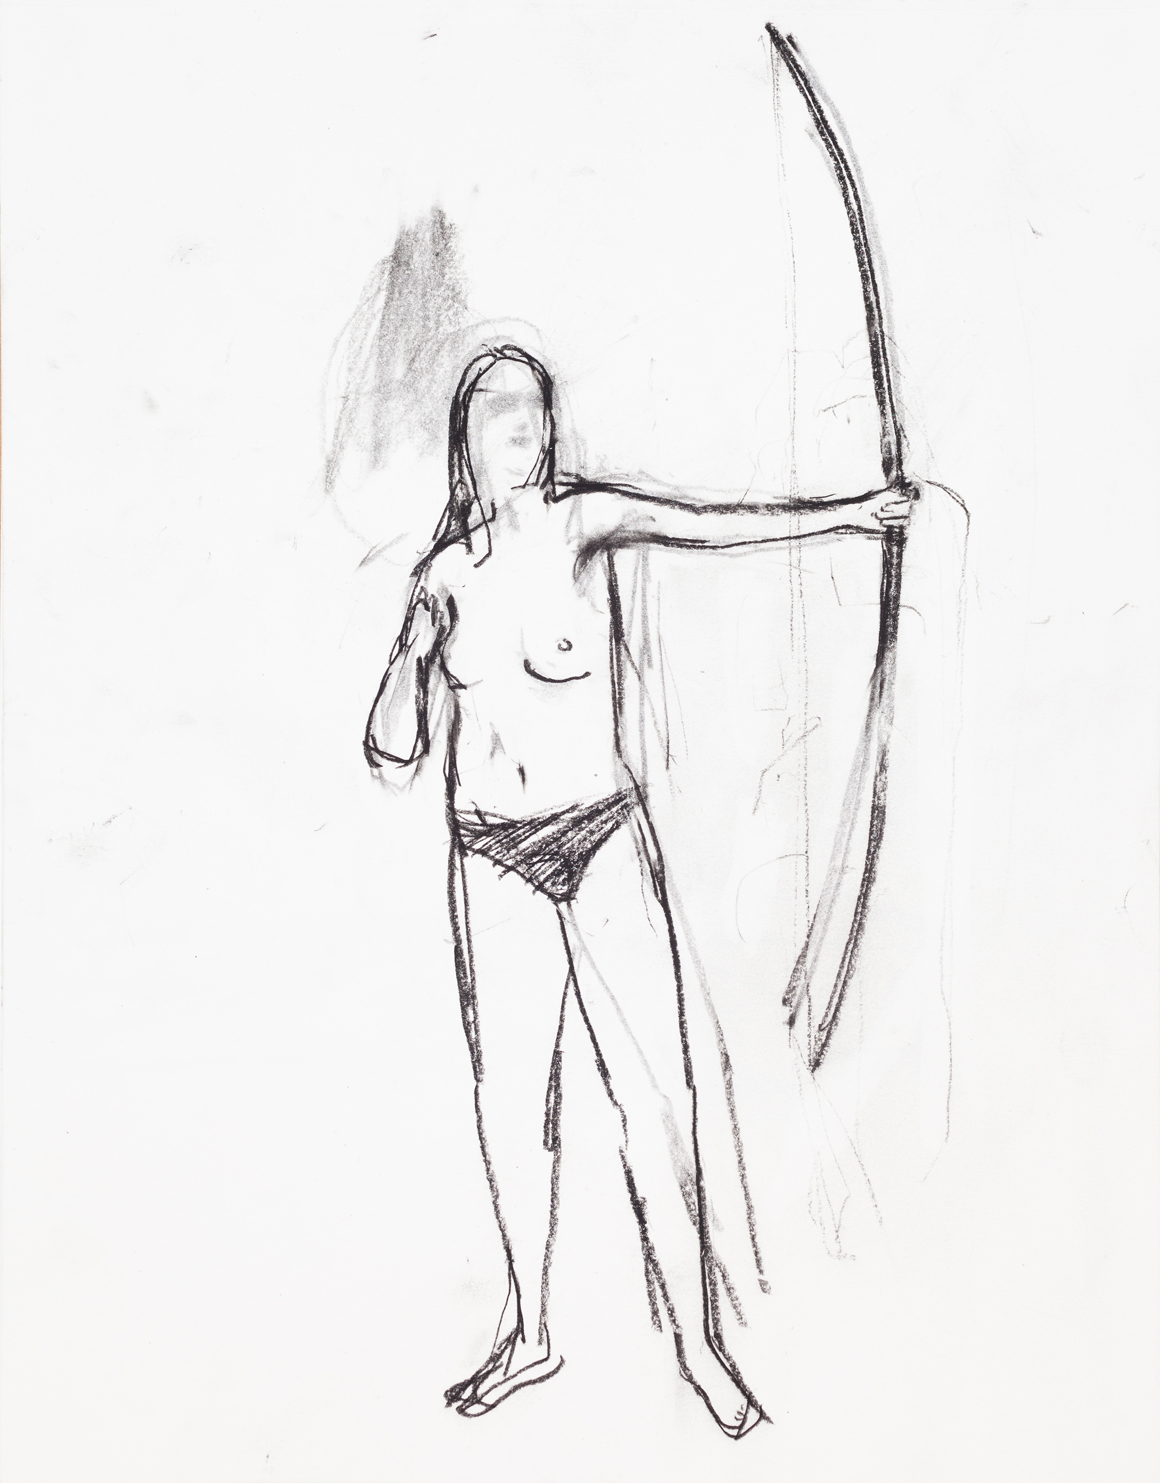 """<p><span class=""""name"""">William Stockman</span><br><em>Untitled (Archer 2)</em><span class='media'>charcoal on paper</span>14 x 11in 16 1/8i x 13 5/8in Framed<br>2014<br><a class='inquire' href='mailto:info@gildargallery.com?subject=Artwork Inquiry WSTO0040&body=I am interested in finding out more about Untitled (Archer 2) by William Stockman'>Inquire</a></p>"""